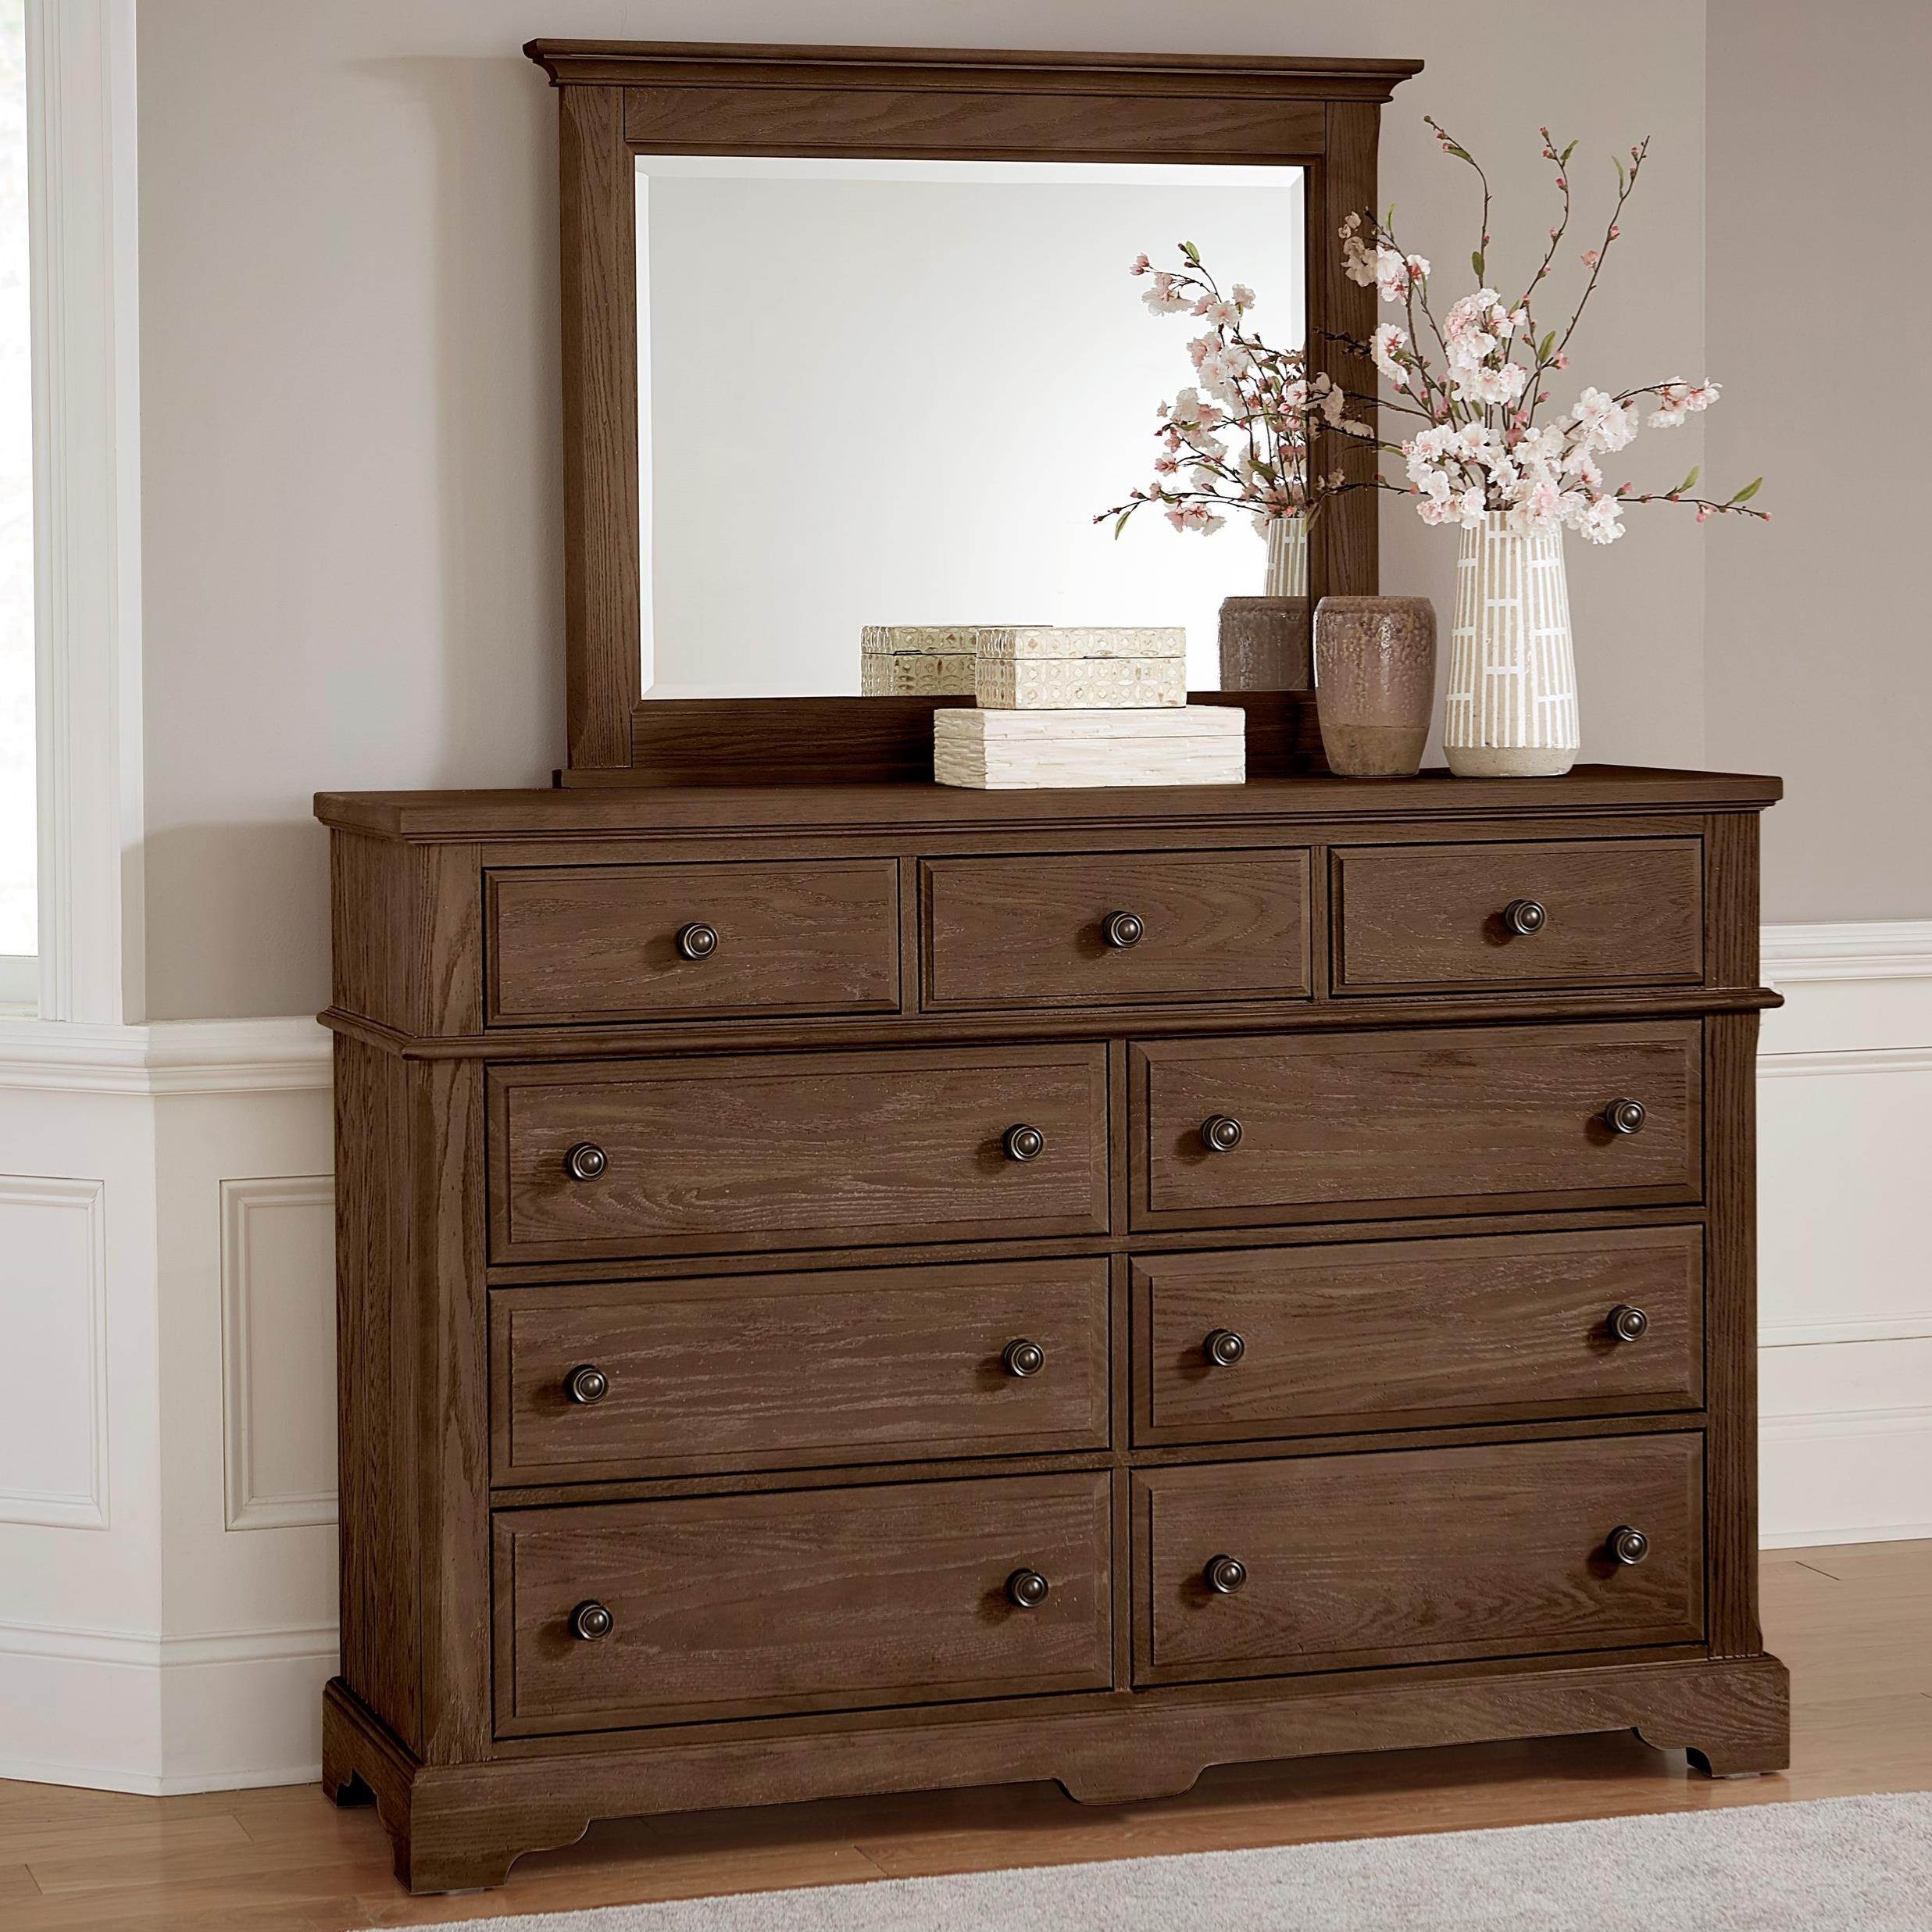 Heritage Dresser and Mirror by Artisan & Post at Northeast Factory Direct